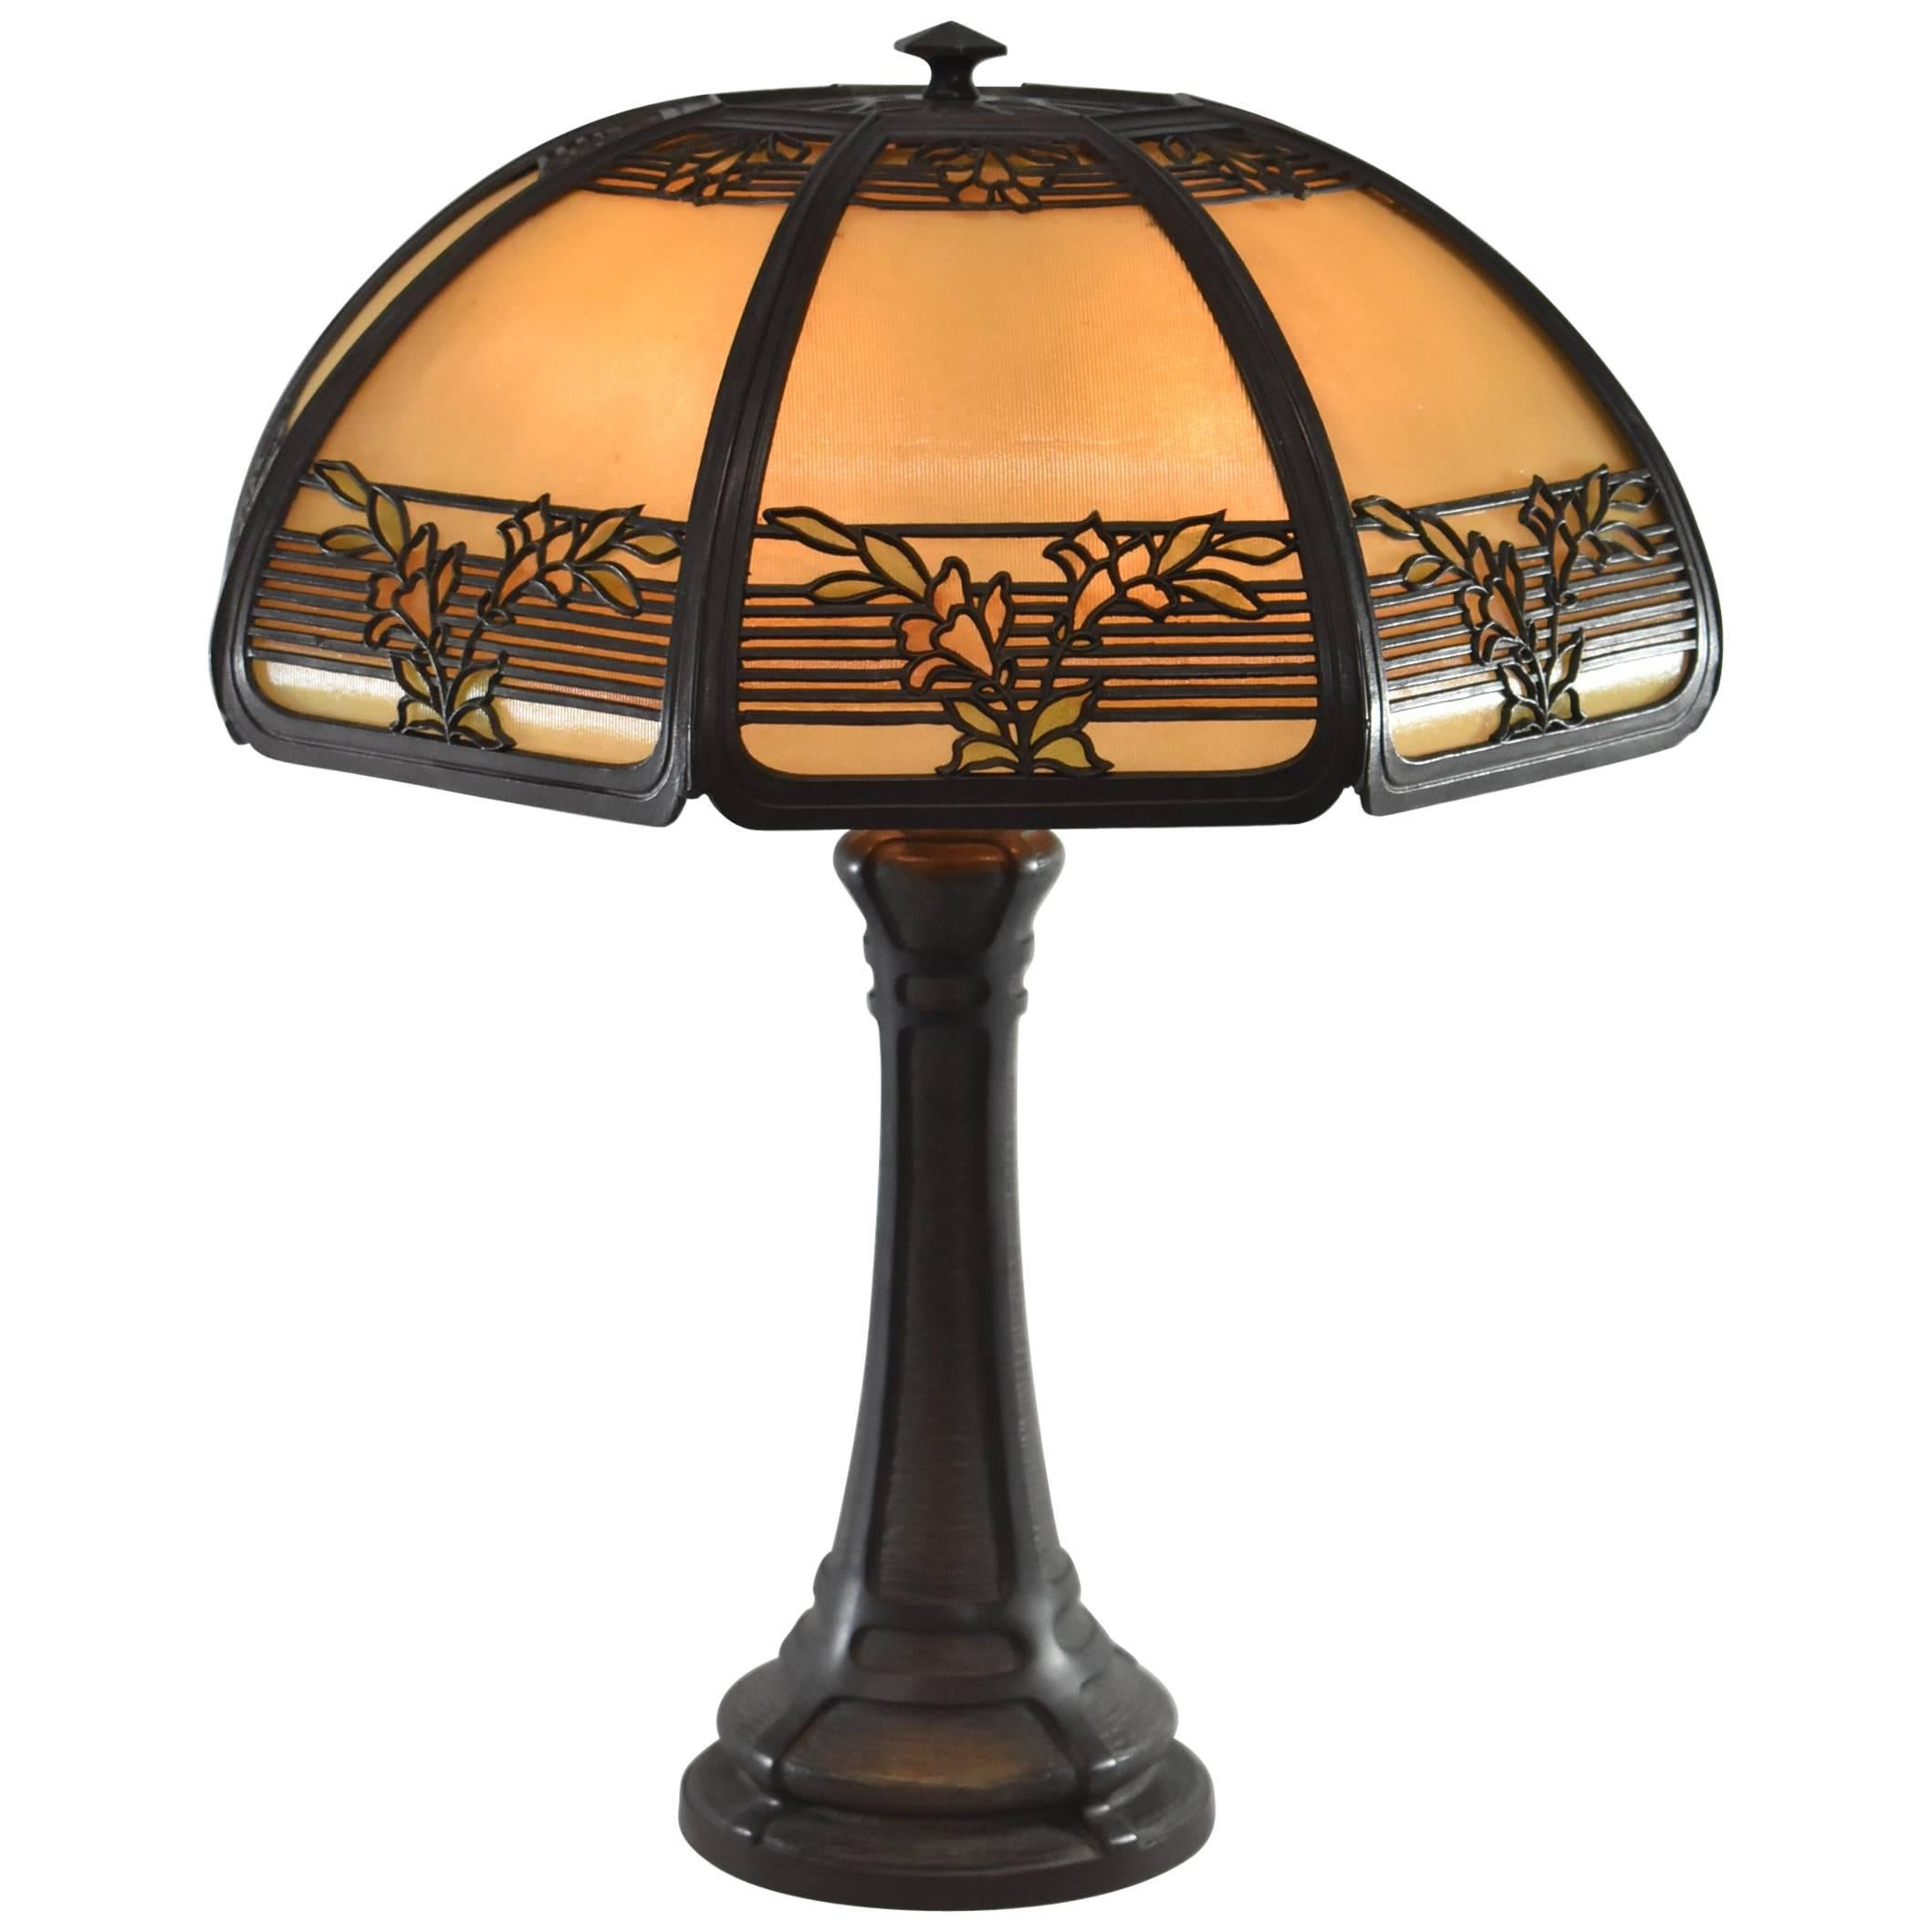 Superb Arts U0026 Crafts Bent Panel Glass Reverse Painted Table Lamp By Bradley And  Hubbard